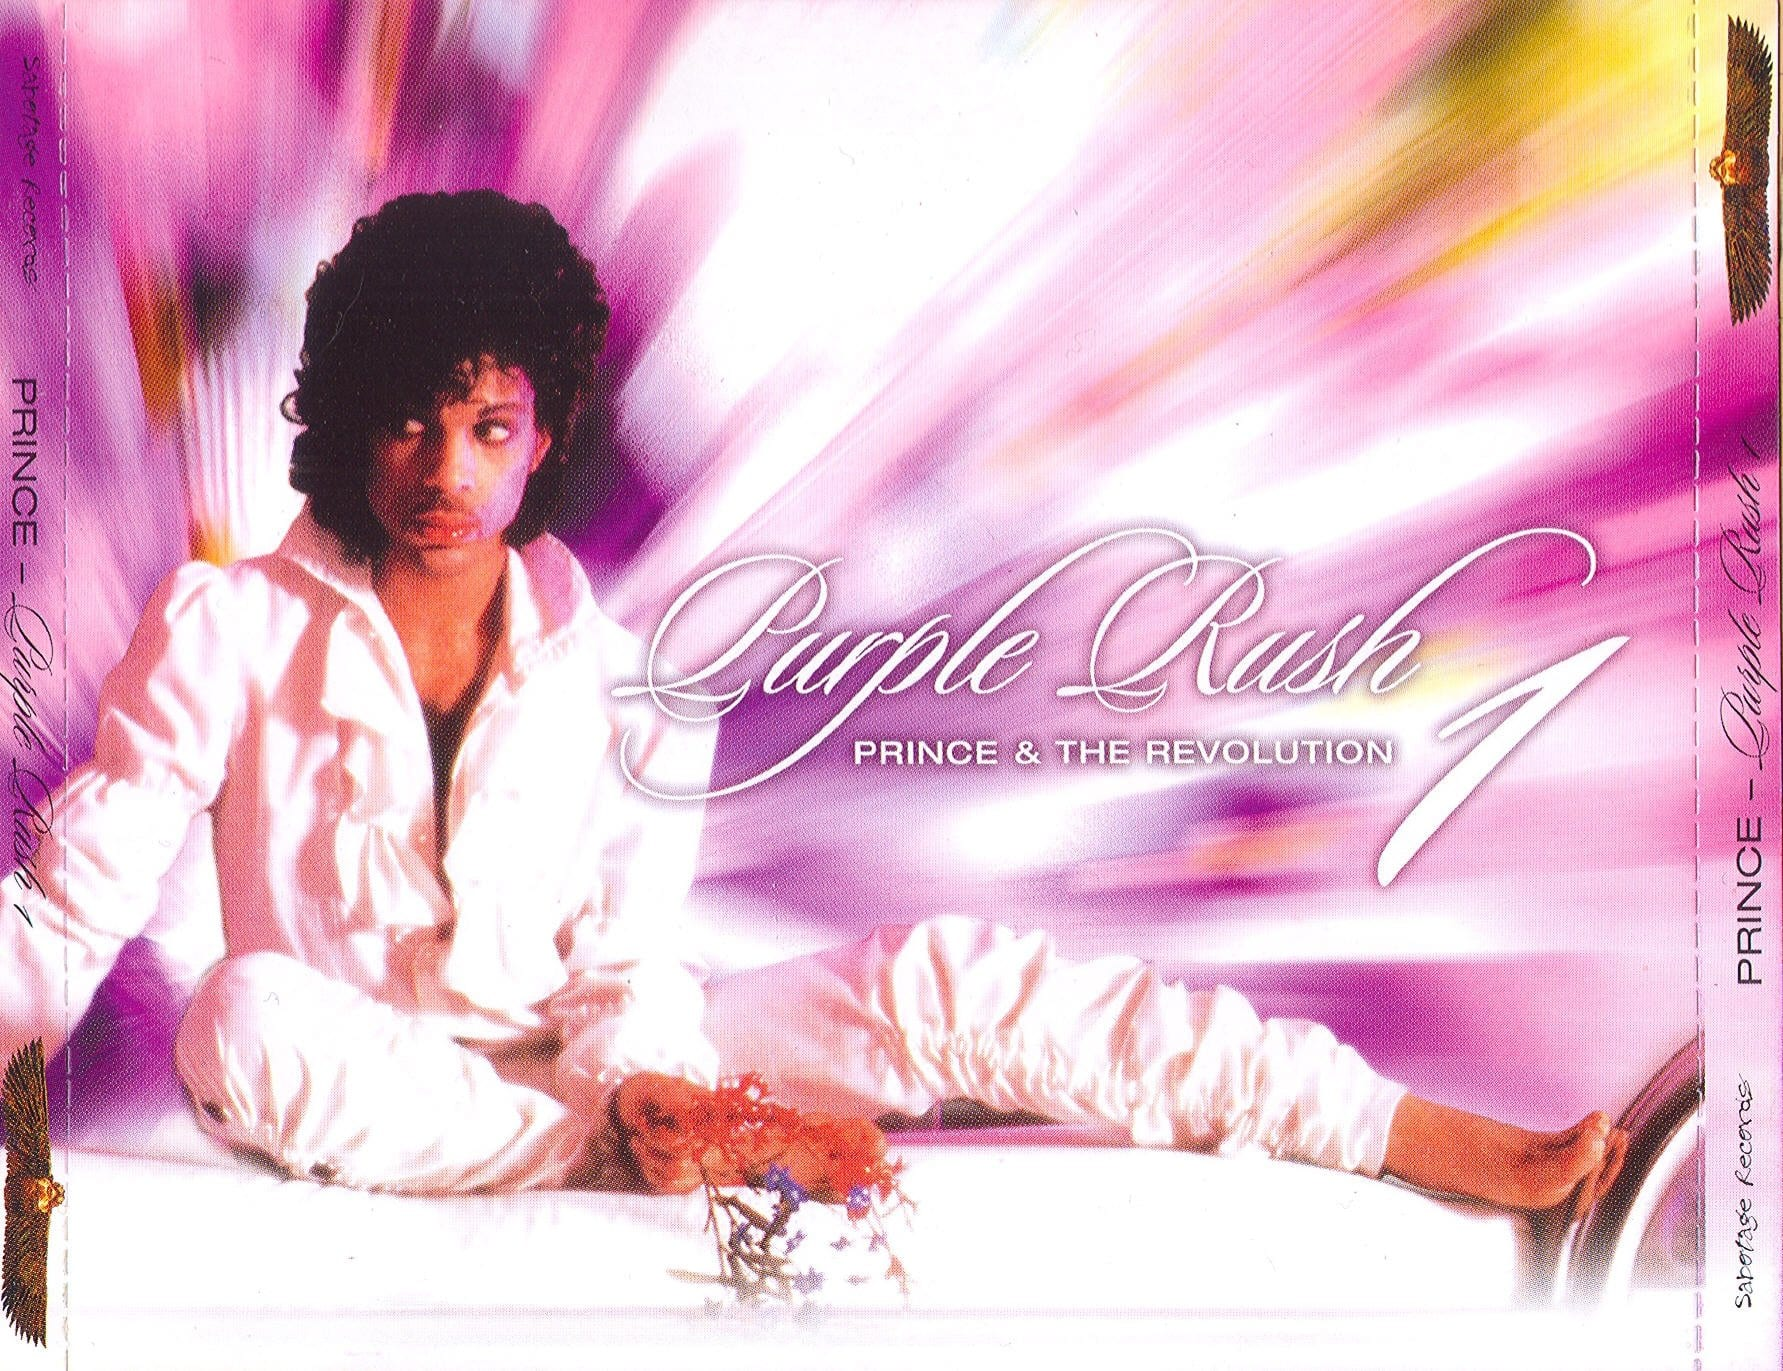 Prince - Purple Rush 2: The Second Coming (Rehearsals 1982-1984) 4 CD SET 10